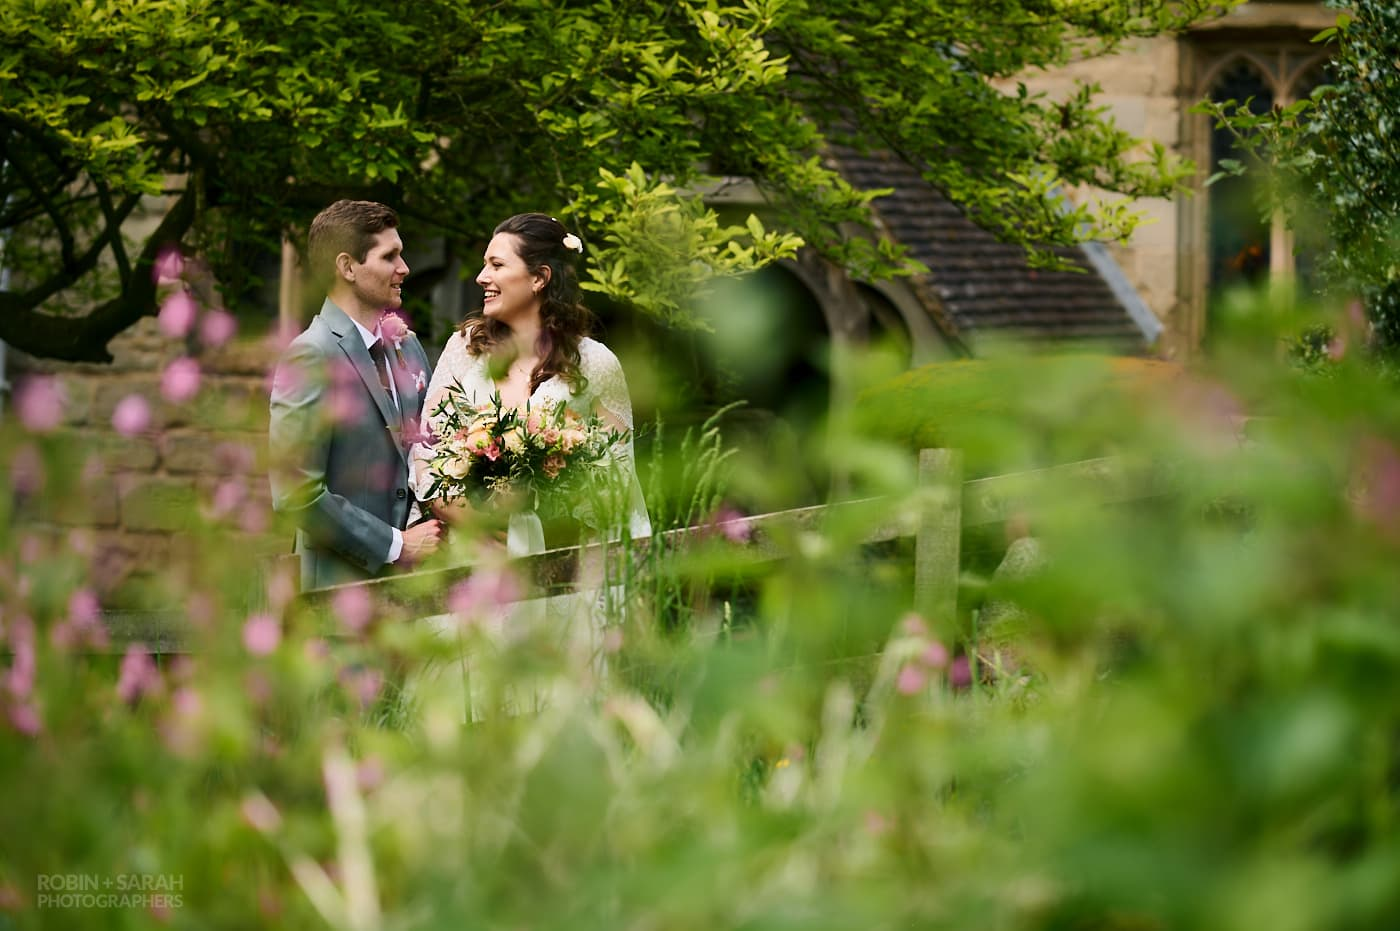 Bride and groom together in church grounds